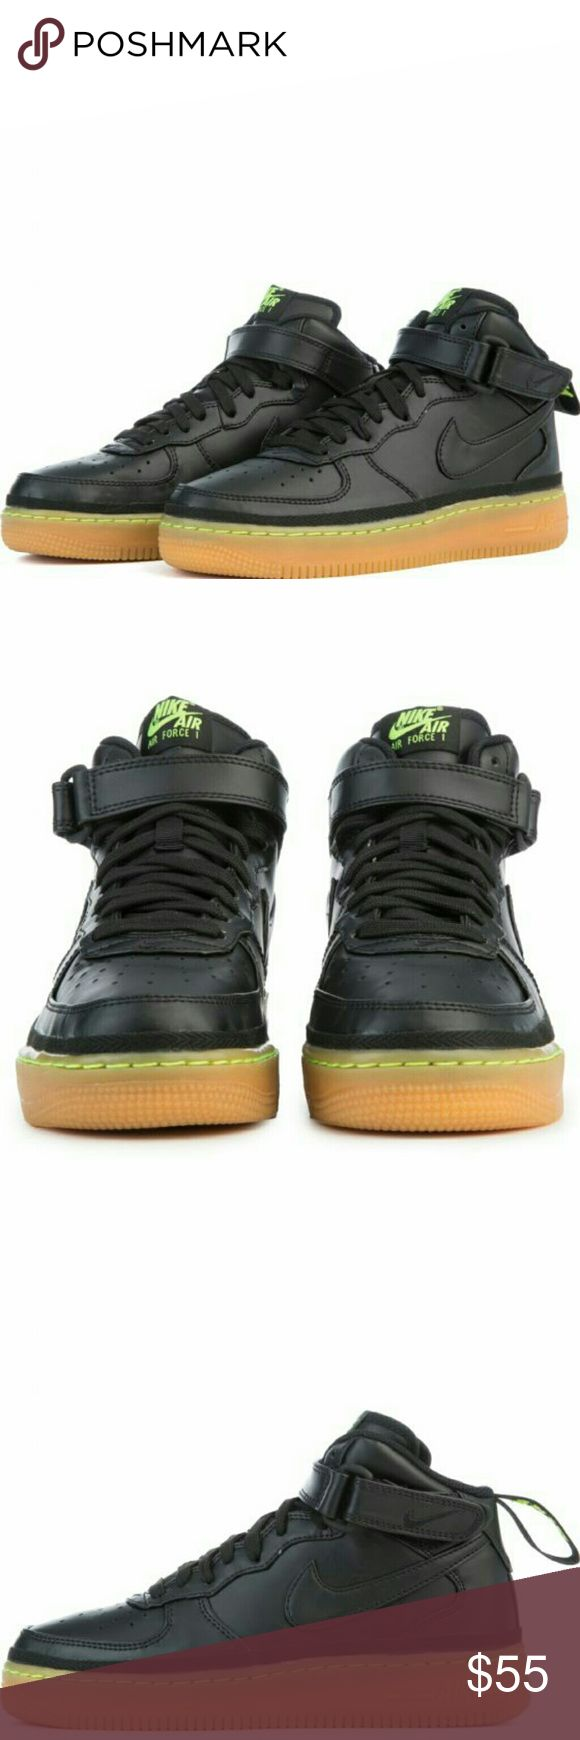 NEW Nike  Air Force 1 Mid LV8 Black/Lime Green/Gum NEW Nike  Air Force 1 Mid LV8 Black/Lime Green/Gum  Nike Air Force 1 Mid LV8 Big Kids' Shoe updates a hoops original with a premium leather and canvas upper and provides lightweight cushioning with an Air-Sole unit. Leather and canvas upper for durability and comfort Ankle strap for stability PU midsole with encapsulated Air-Sole unit for lightweight cushioning Rubber outsole for traction and durability  Sz. 4Y which equals a women's 6 Boxes…